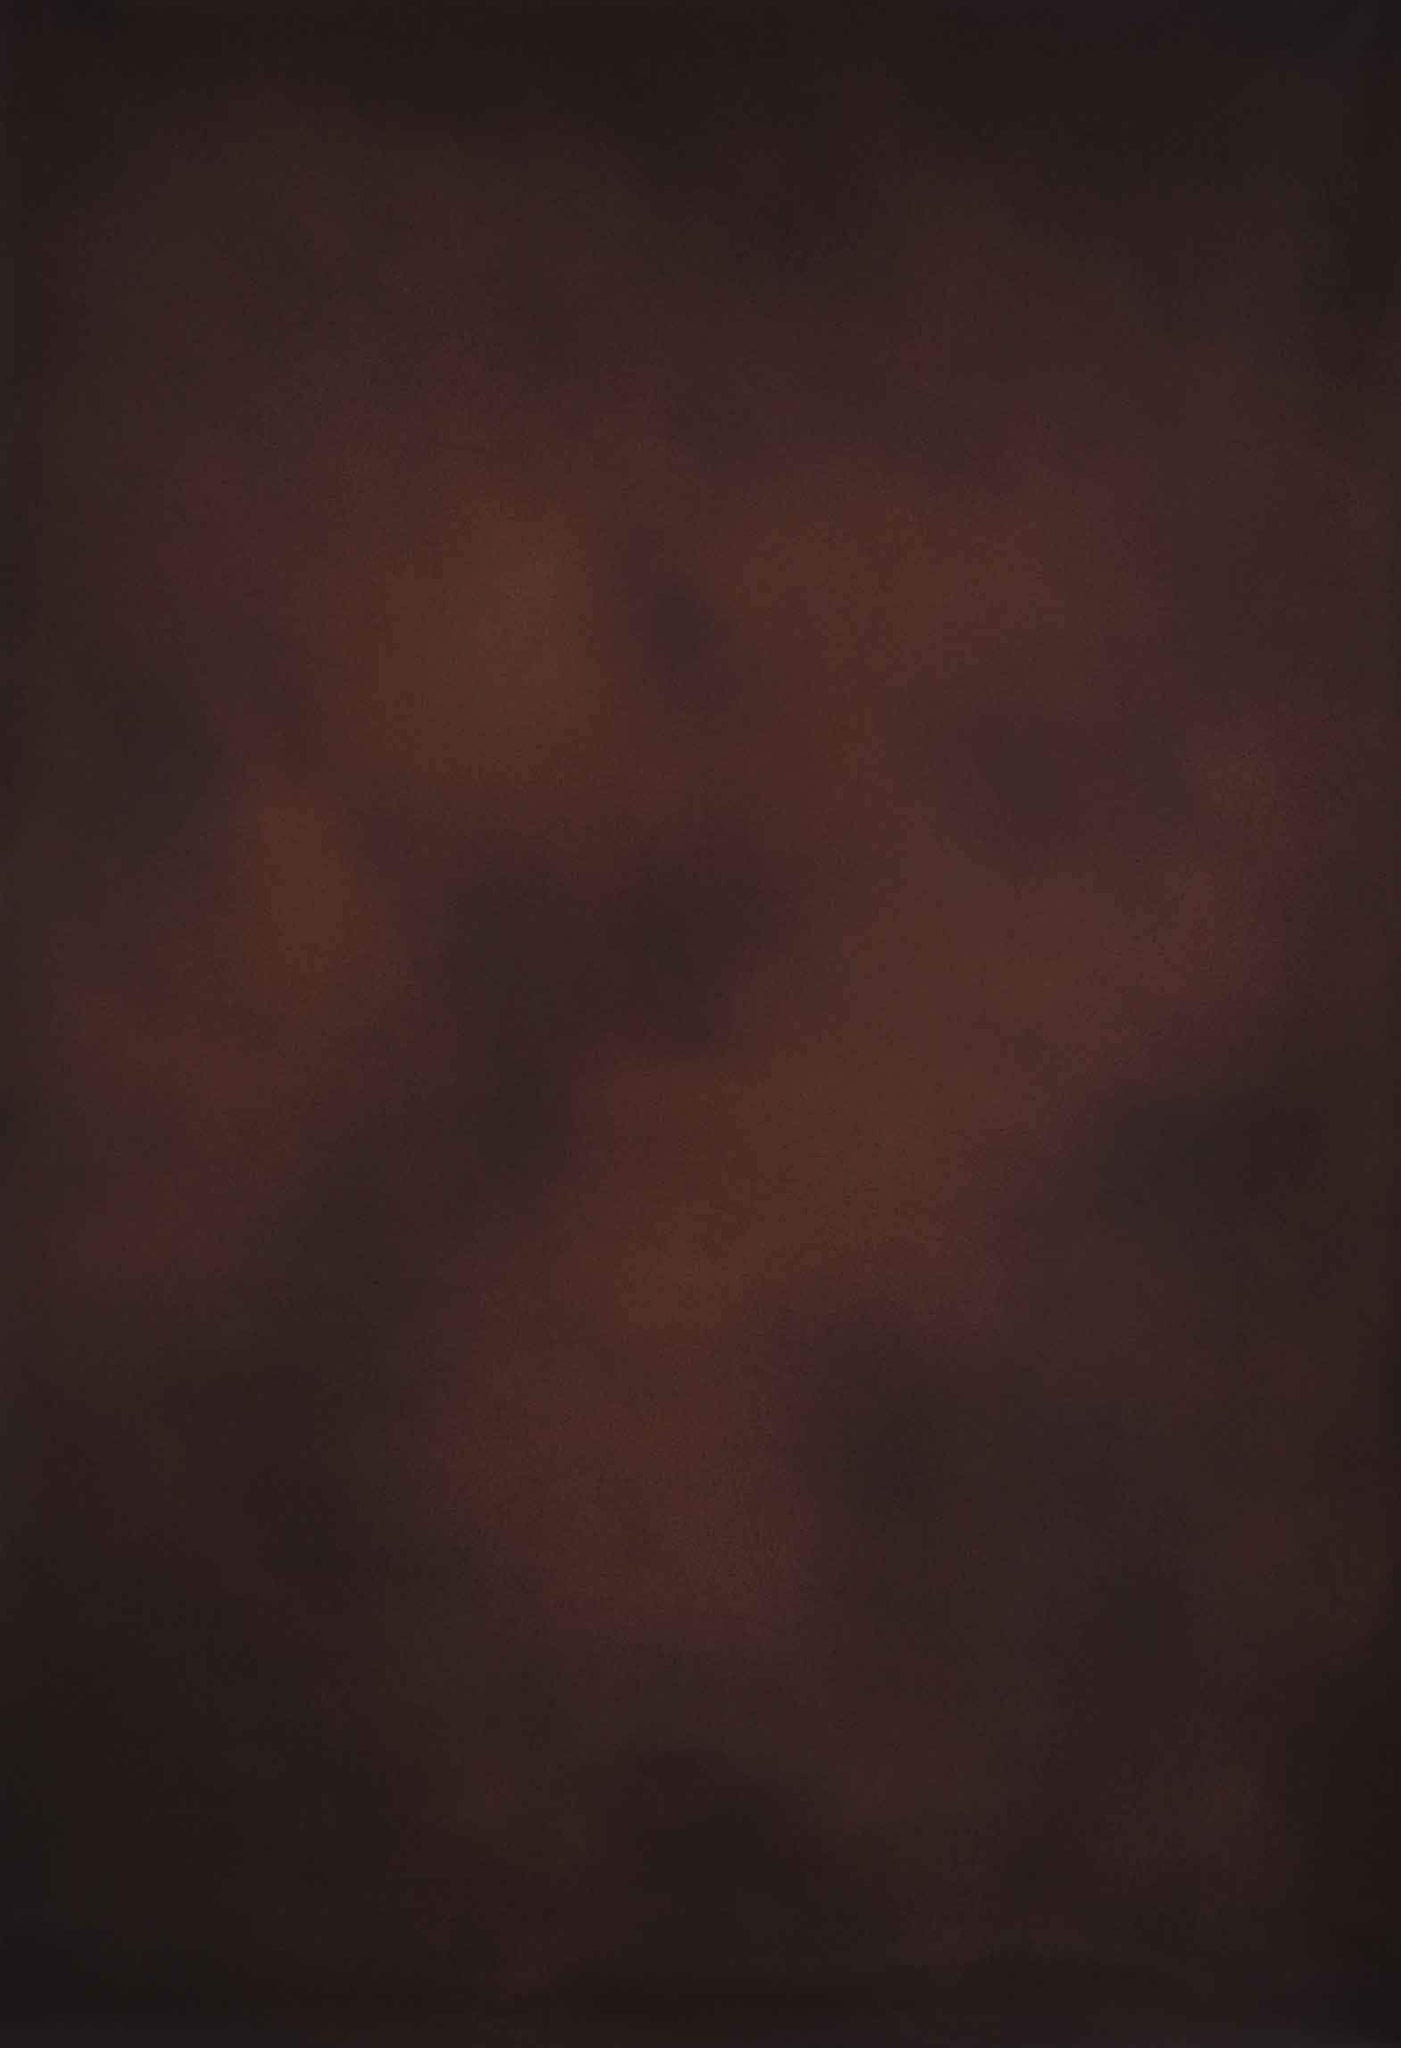 Load image into Gallery viewer, Katebackdrop:Kate Soft Brown Abstract Texture Spray Hand Painted Backdrop